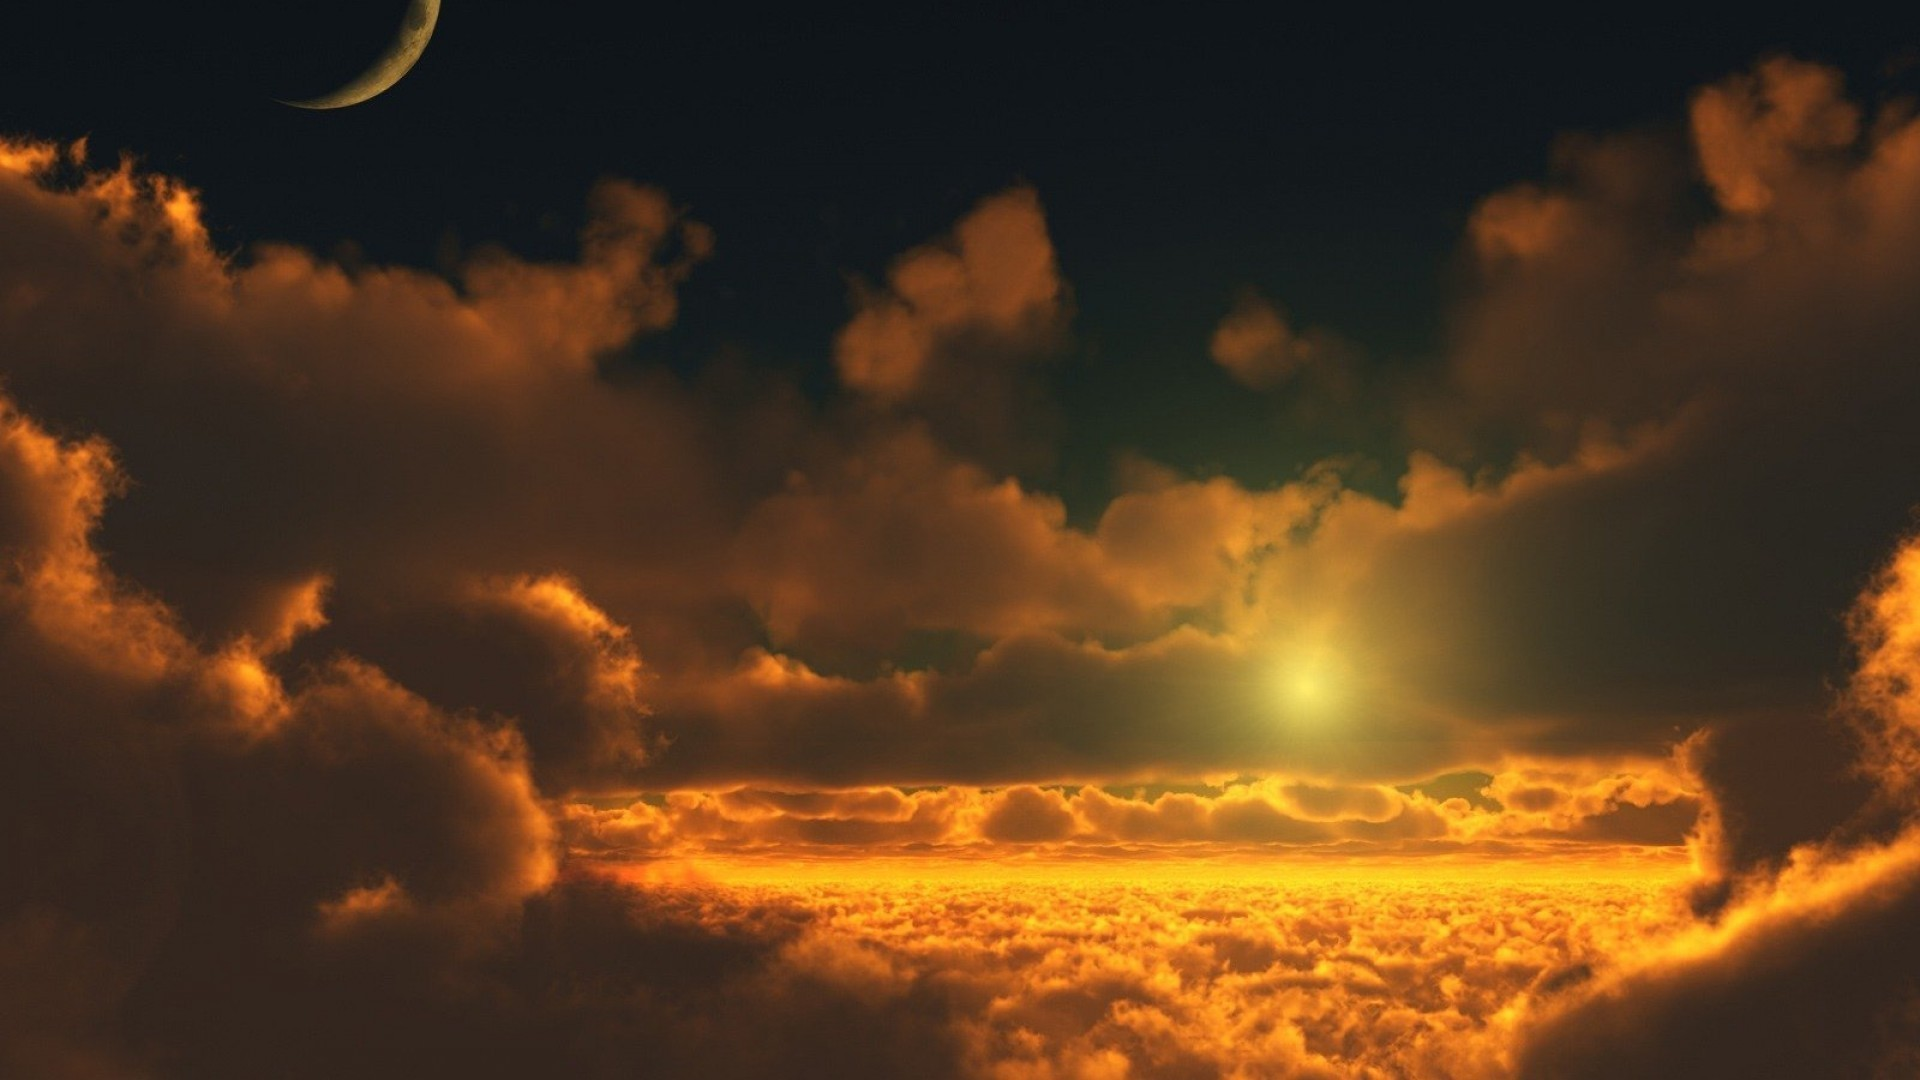 moon-clouds-nature-skyscapes-sunset-1920×1080-wallpaper